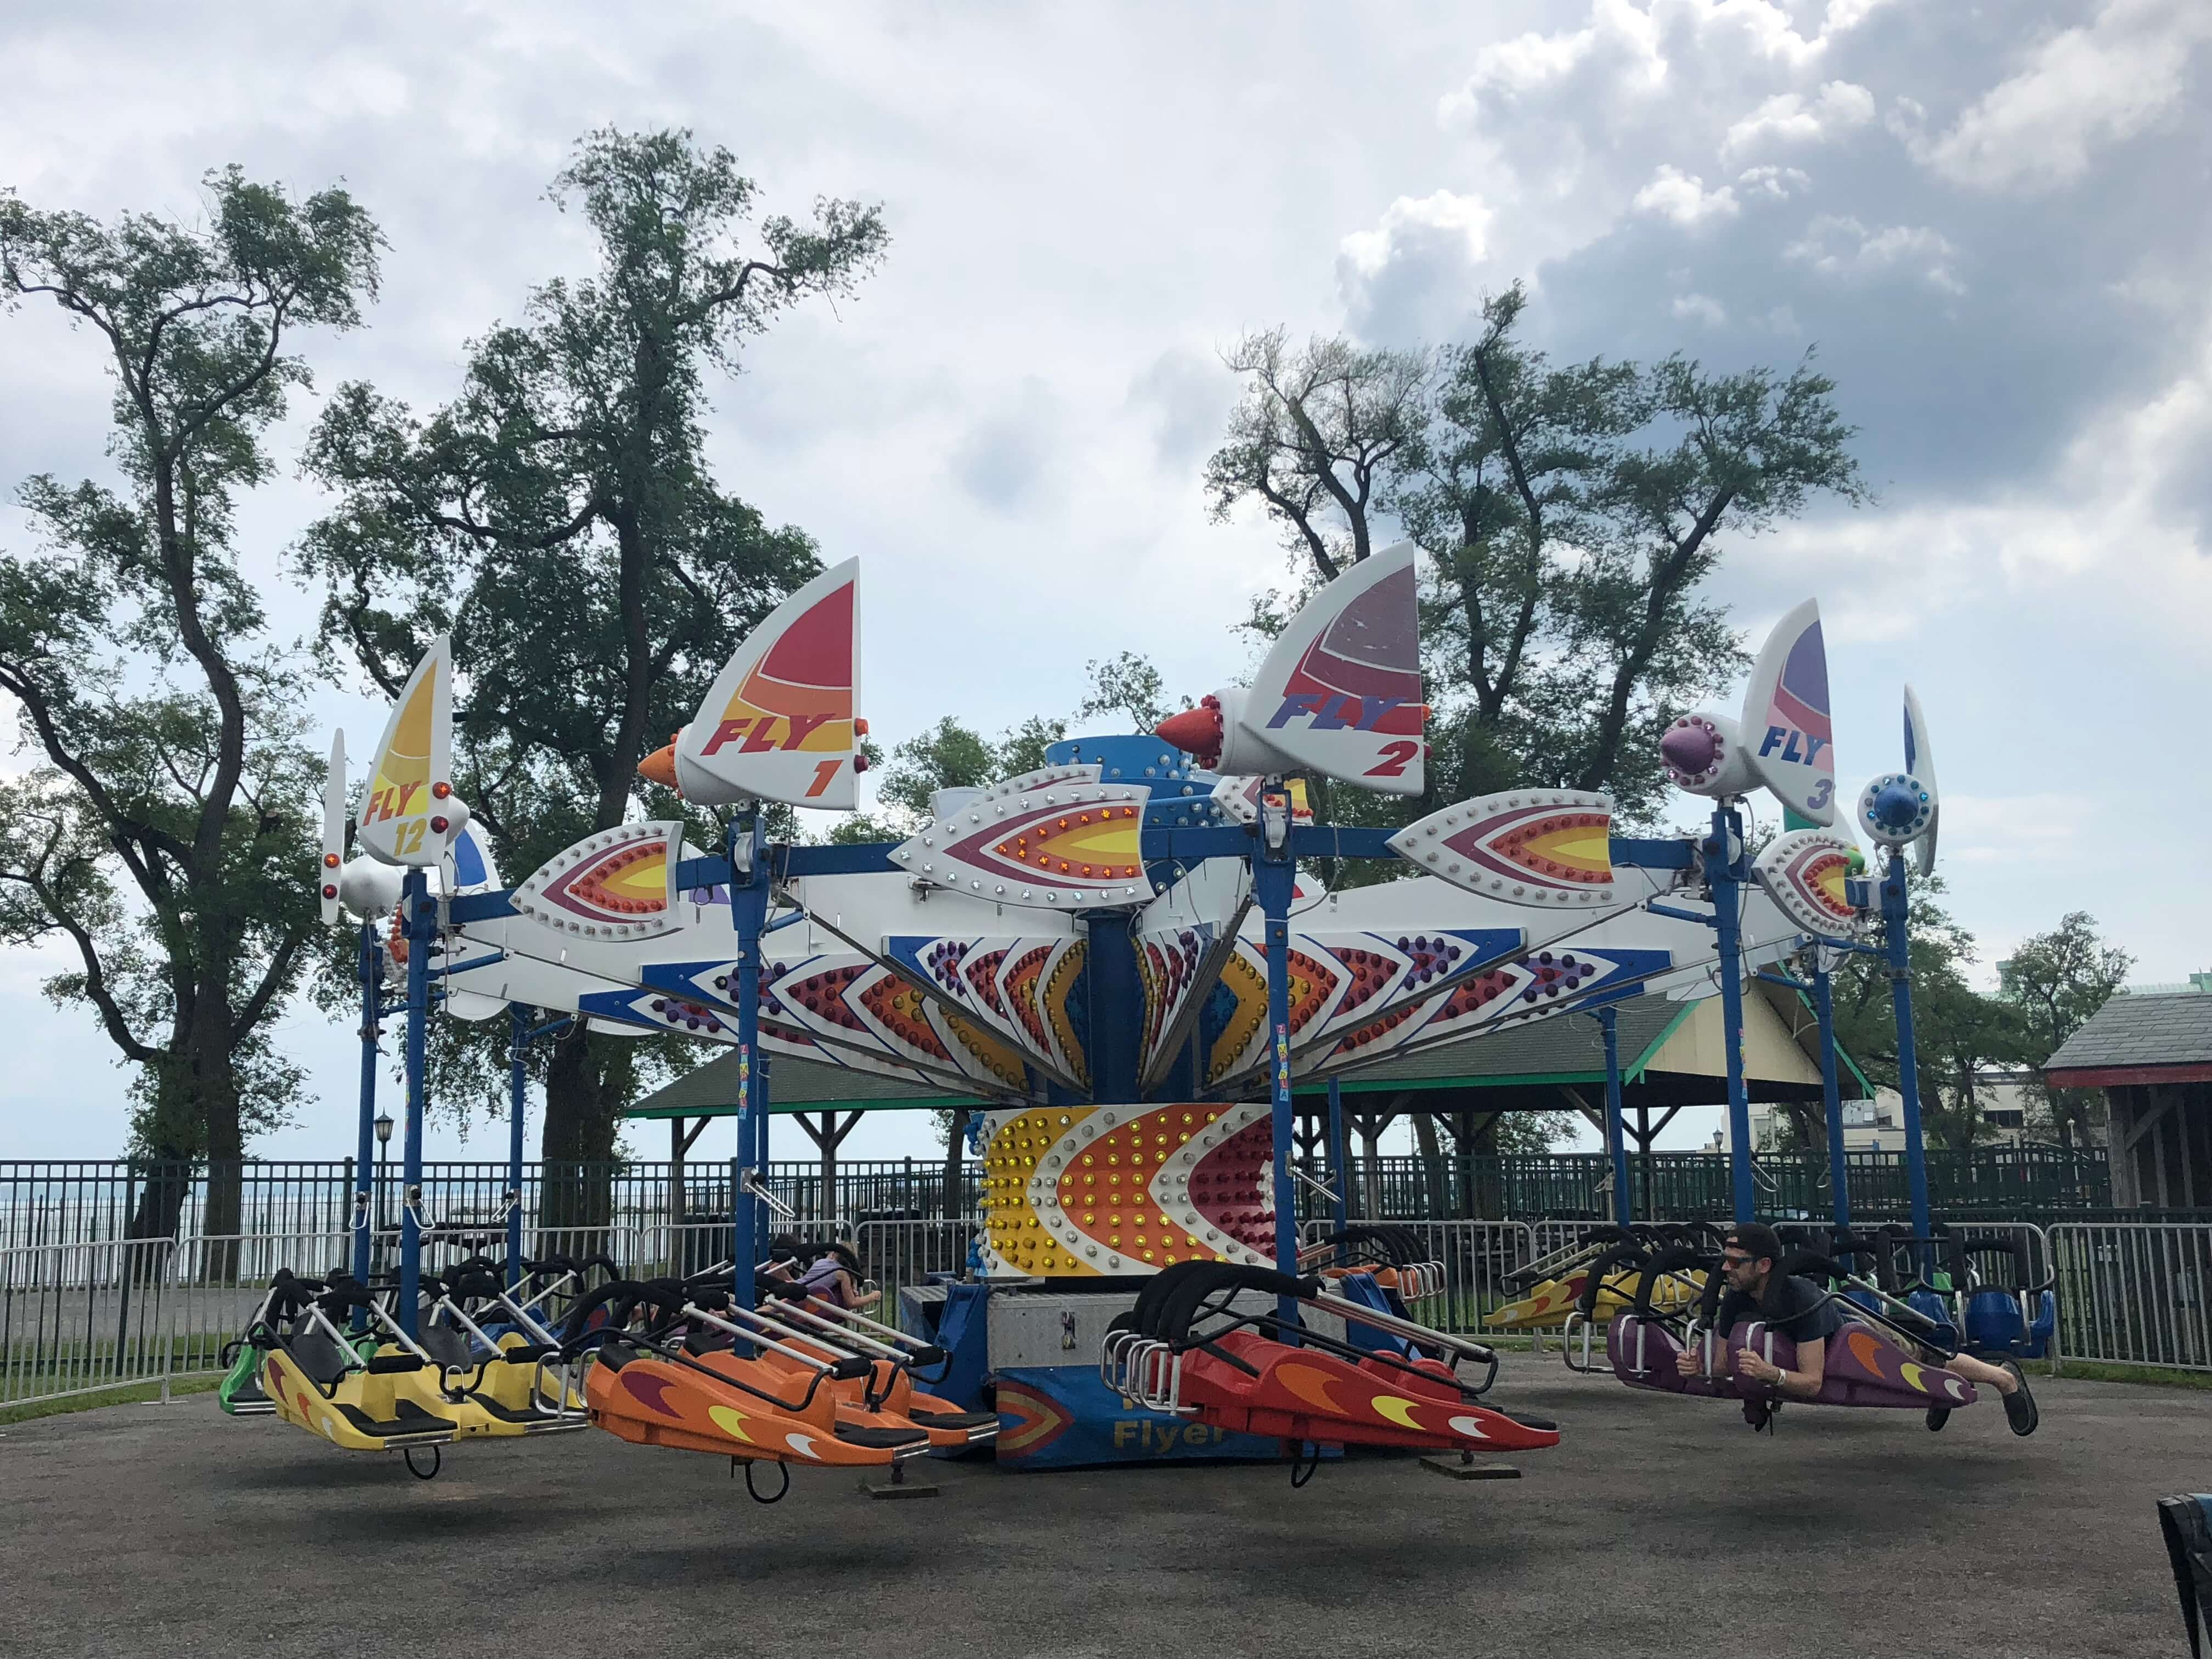 Summer Fun at Playland thrill rides